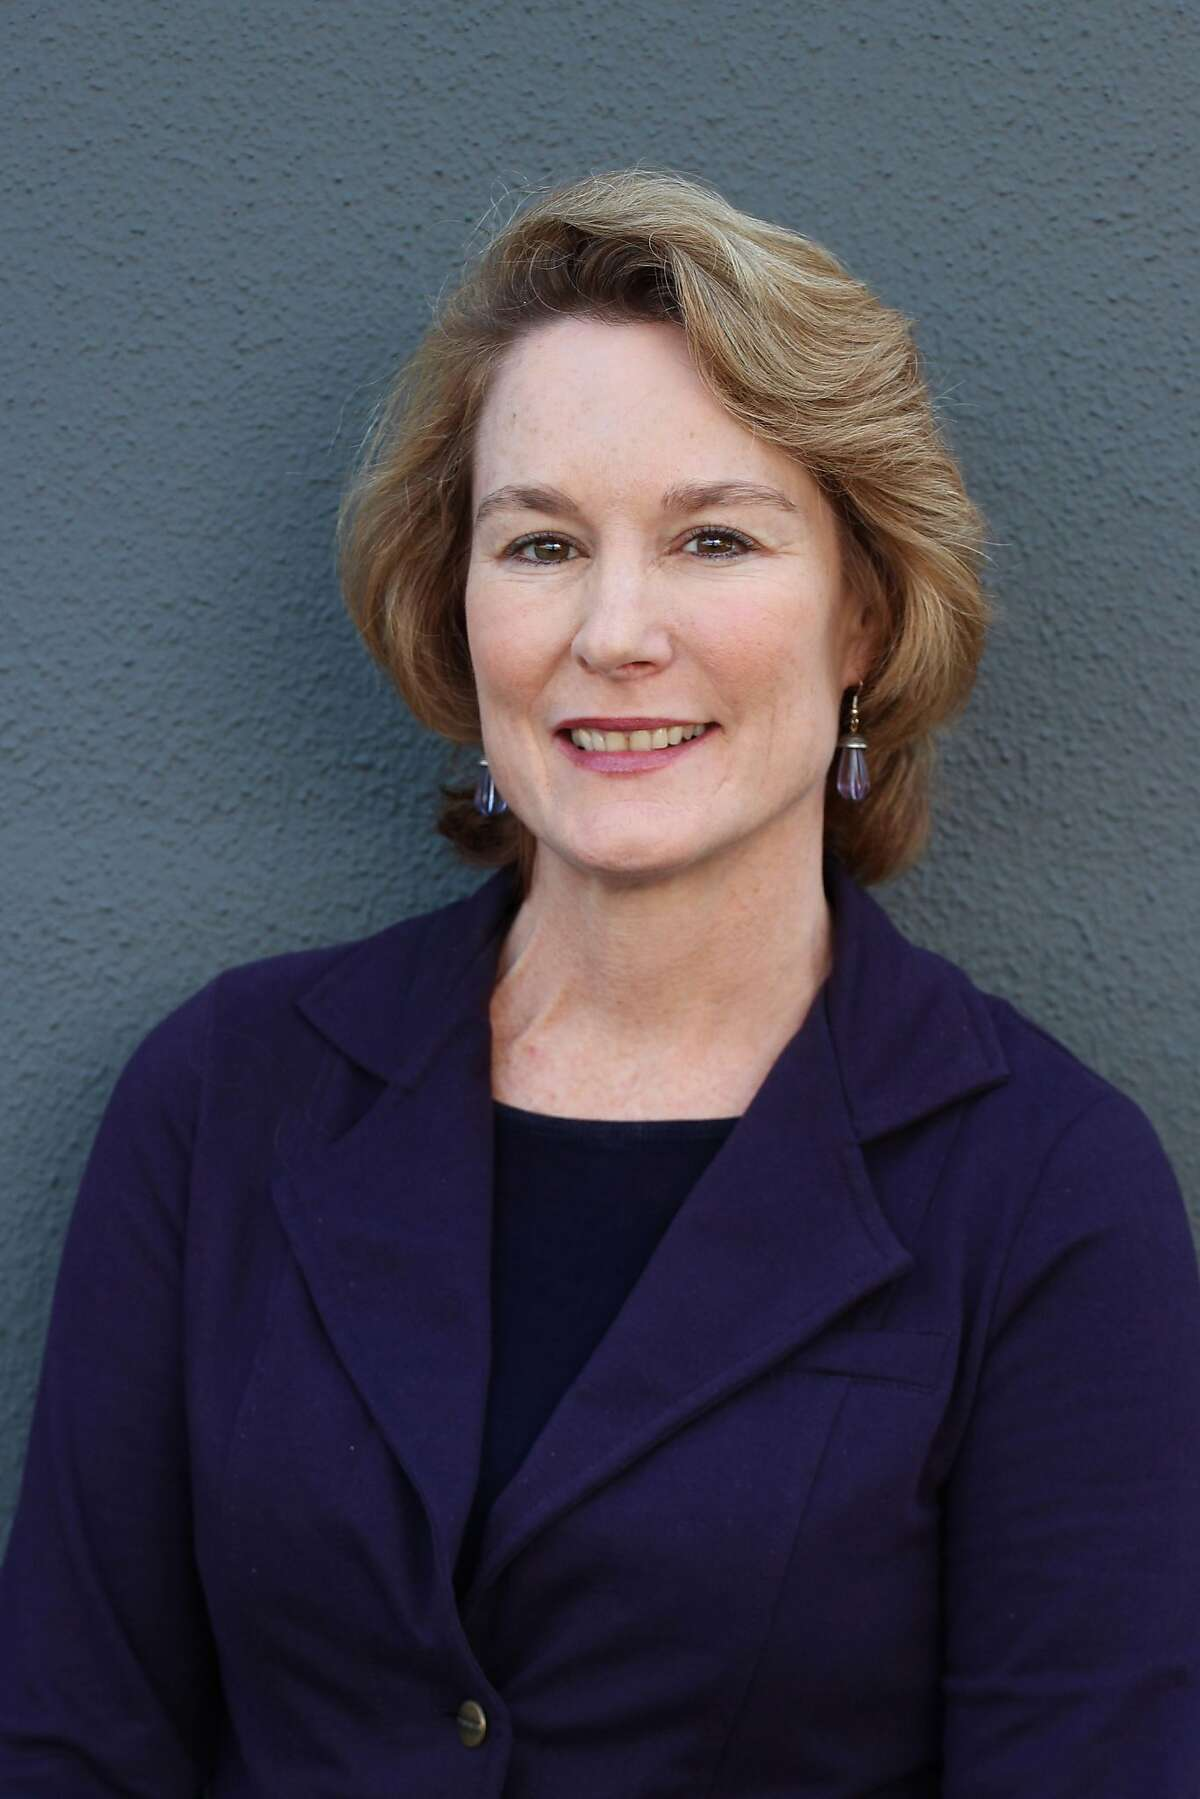 Holly Kernan is vp in charge of news at KQED